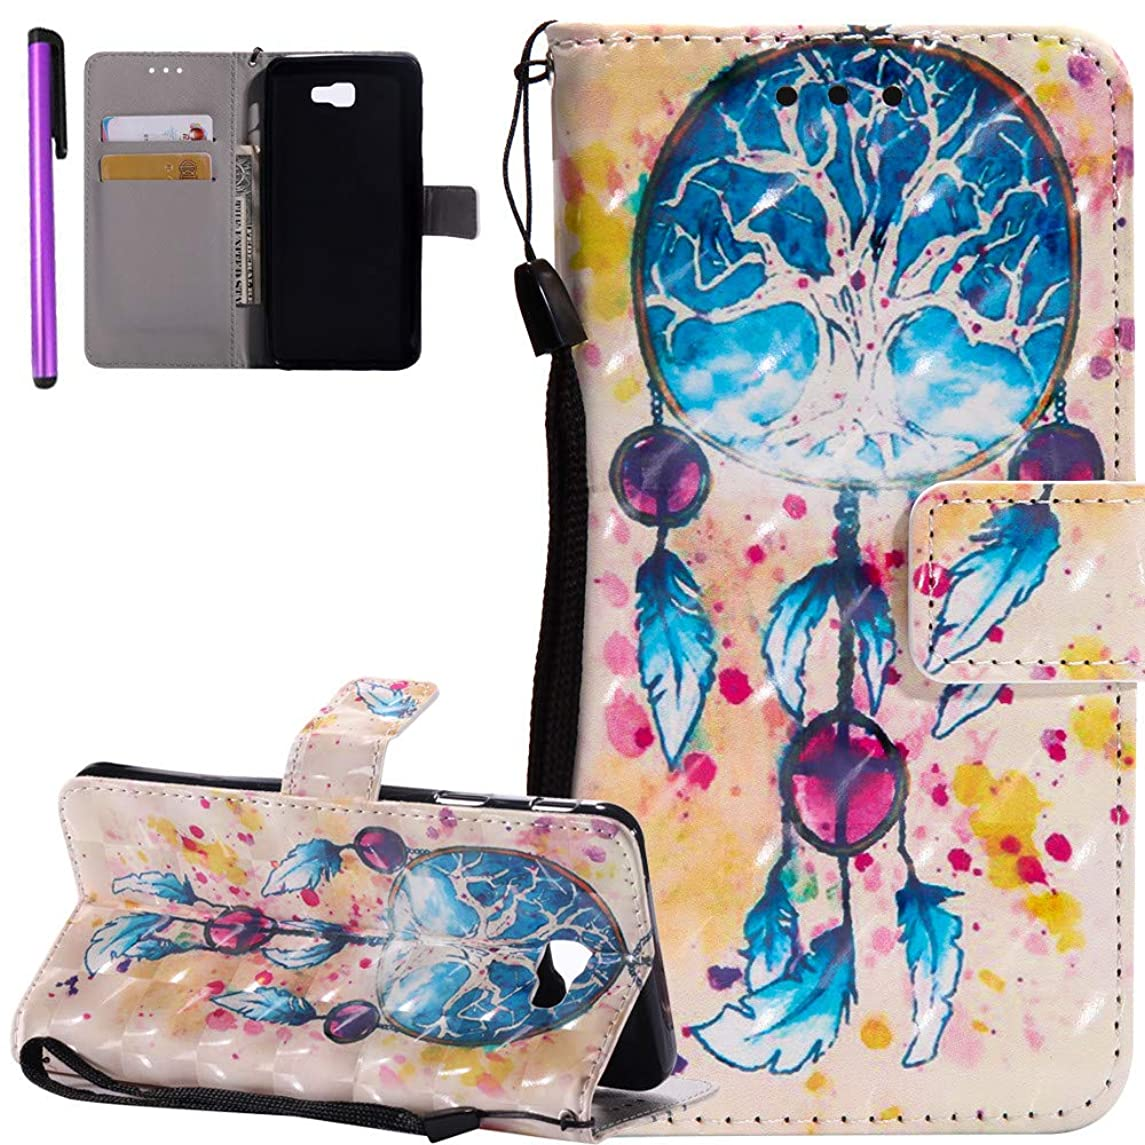 ISADENSER Samsung Galaxy J7 Prime Case [Wallet Stand] Flip Magnetic Closure Shockproof Card Holder PU Leather Wallet Case Cover Samsung Galaxy J7 Prime / J7 Sky Pro 3D Tree on Windbell KT